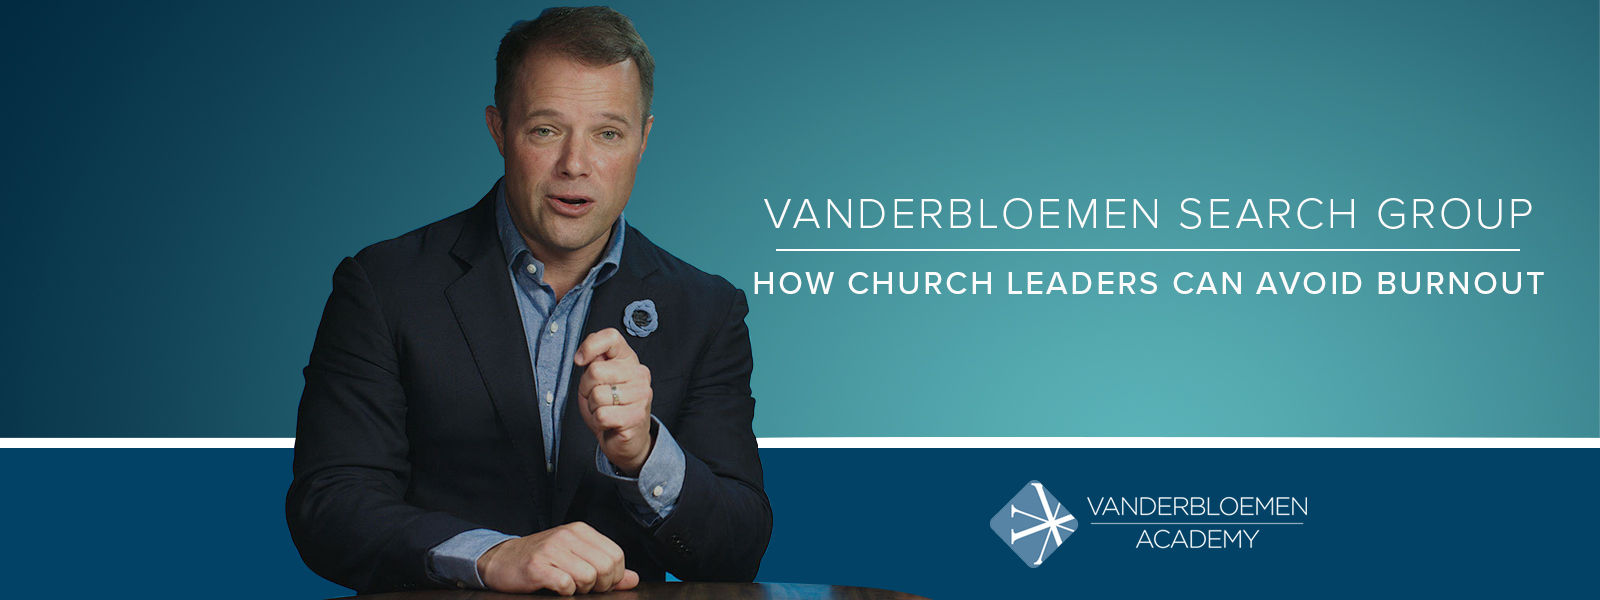 How Church Leaders Can Avoid Burnout